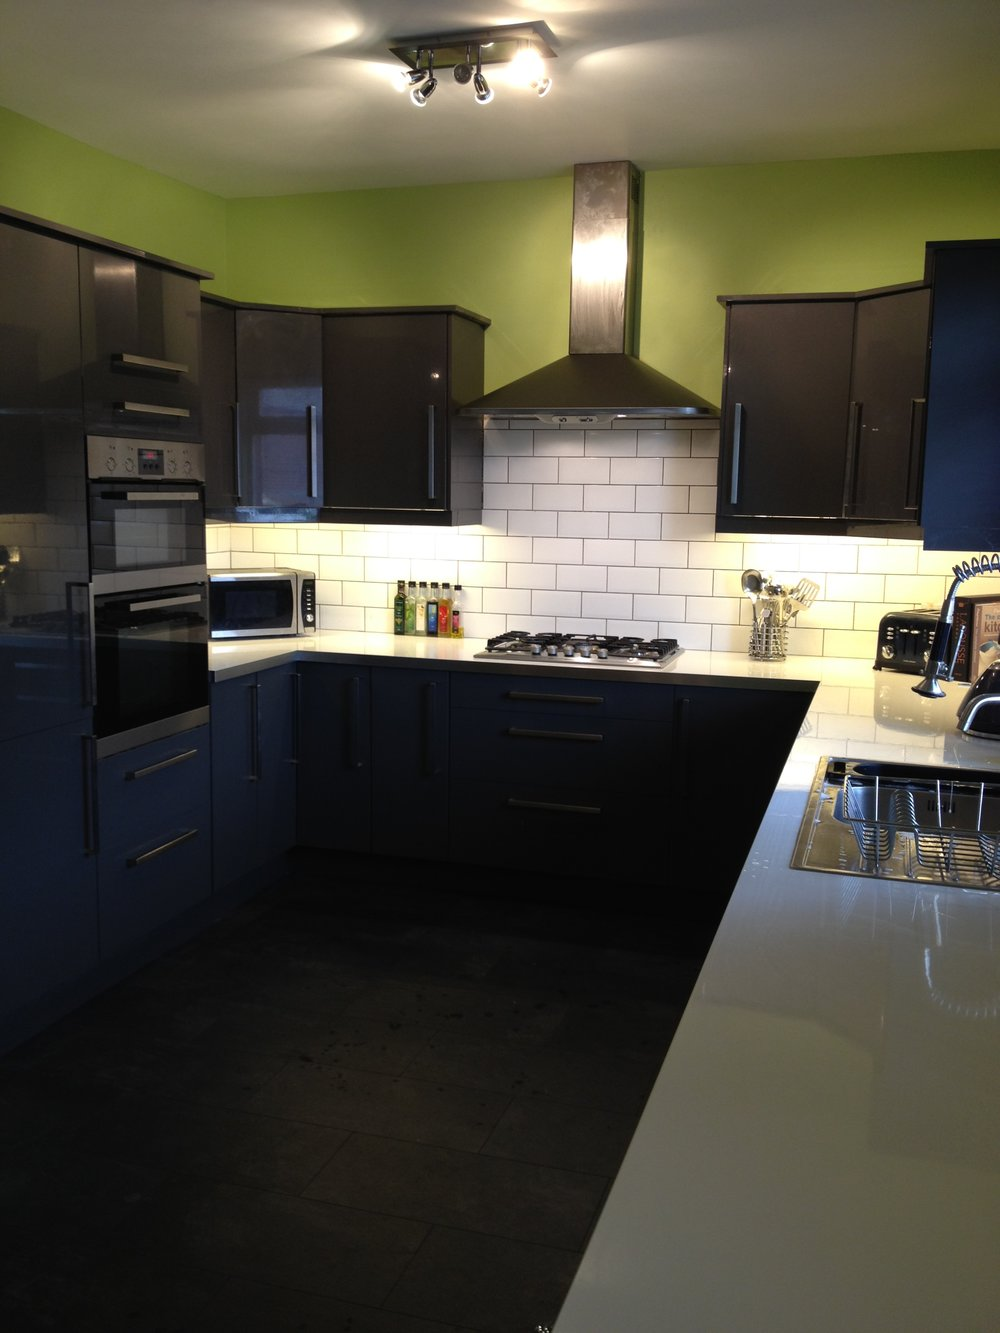 Kitchens - Supply and fit of kitchens, fitting service (flat-packed or pre-built), renovations and extending of kitchens.